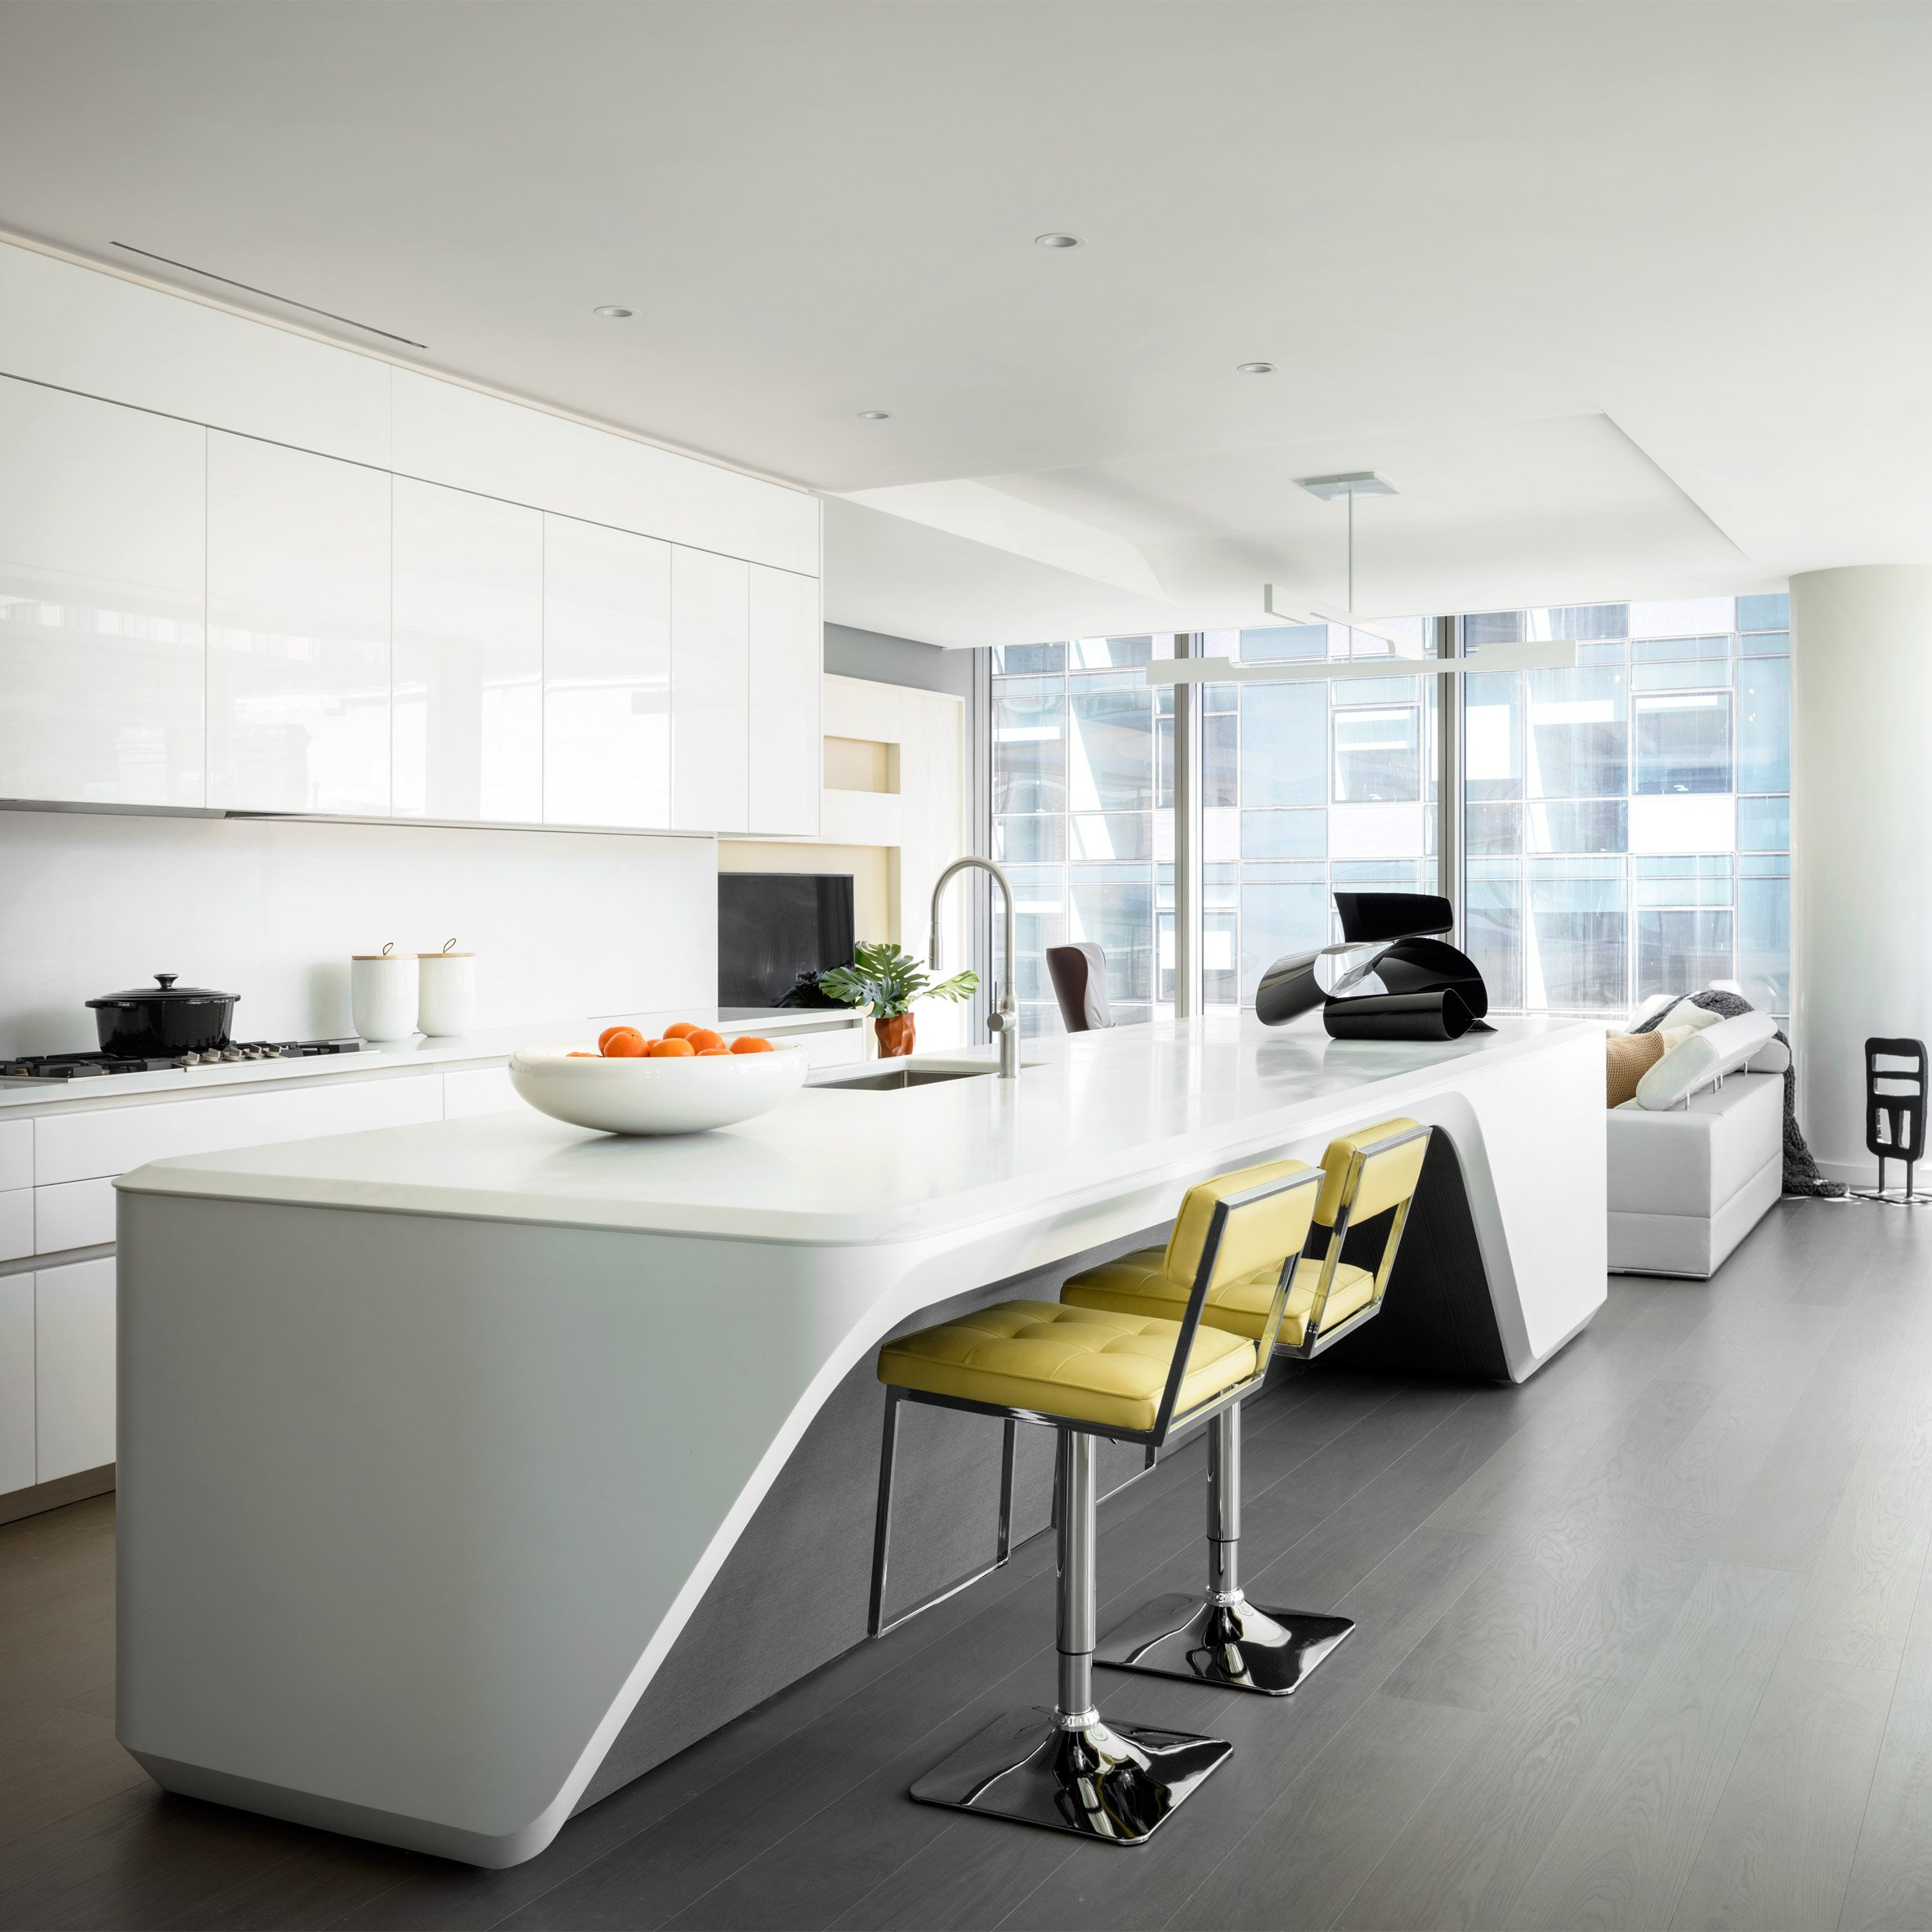 Luxury Apartment: In Pictures: Designers Equip Zaha Hadid's First New York